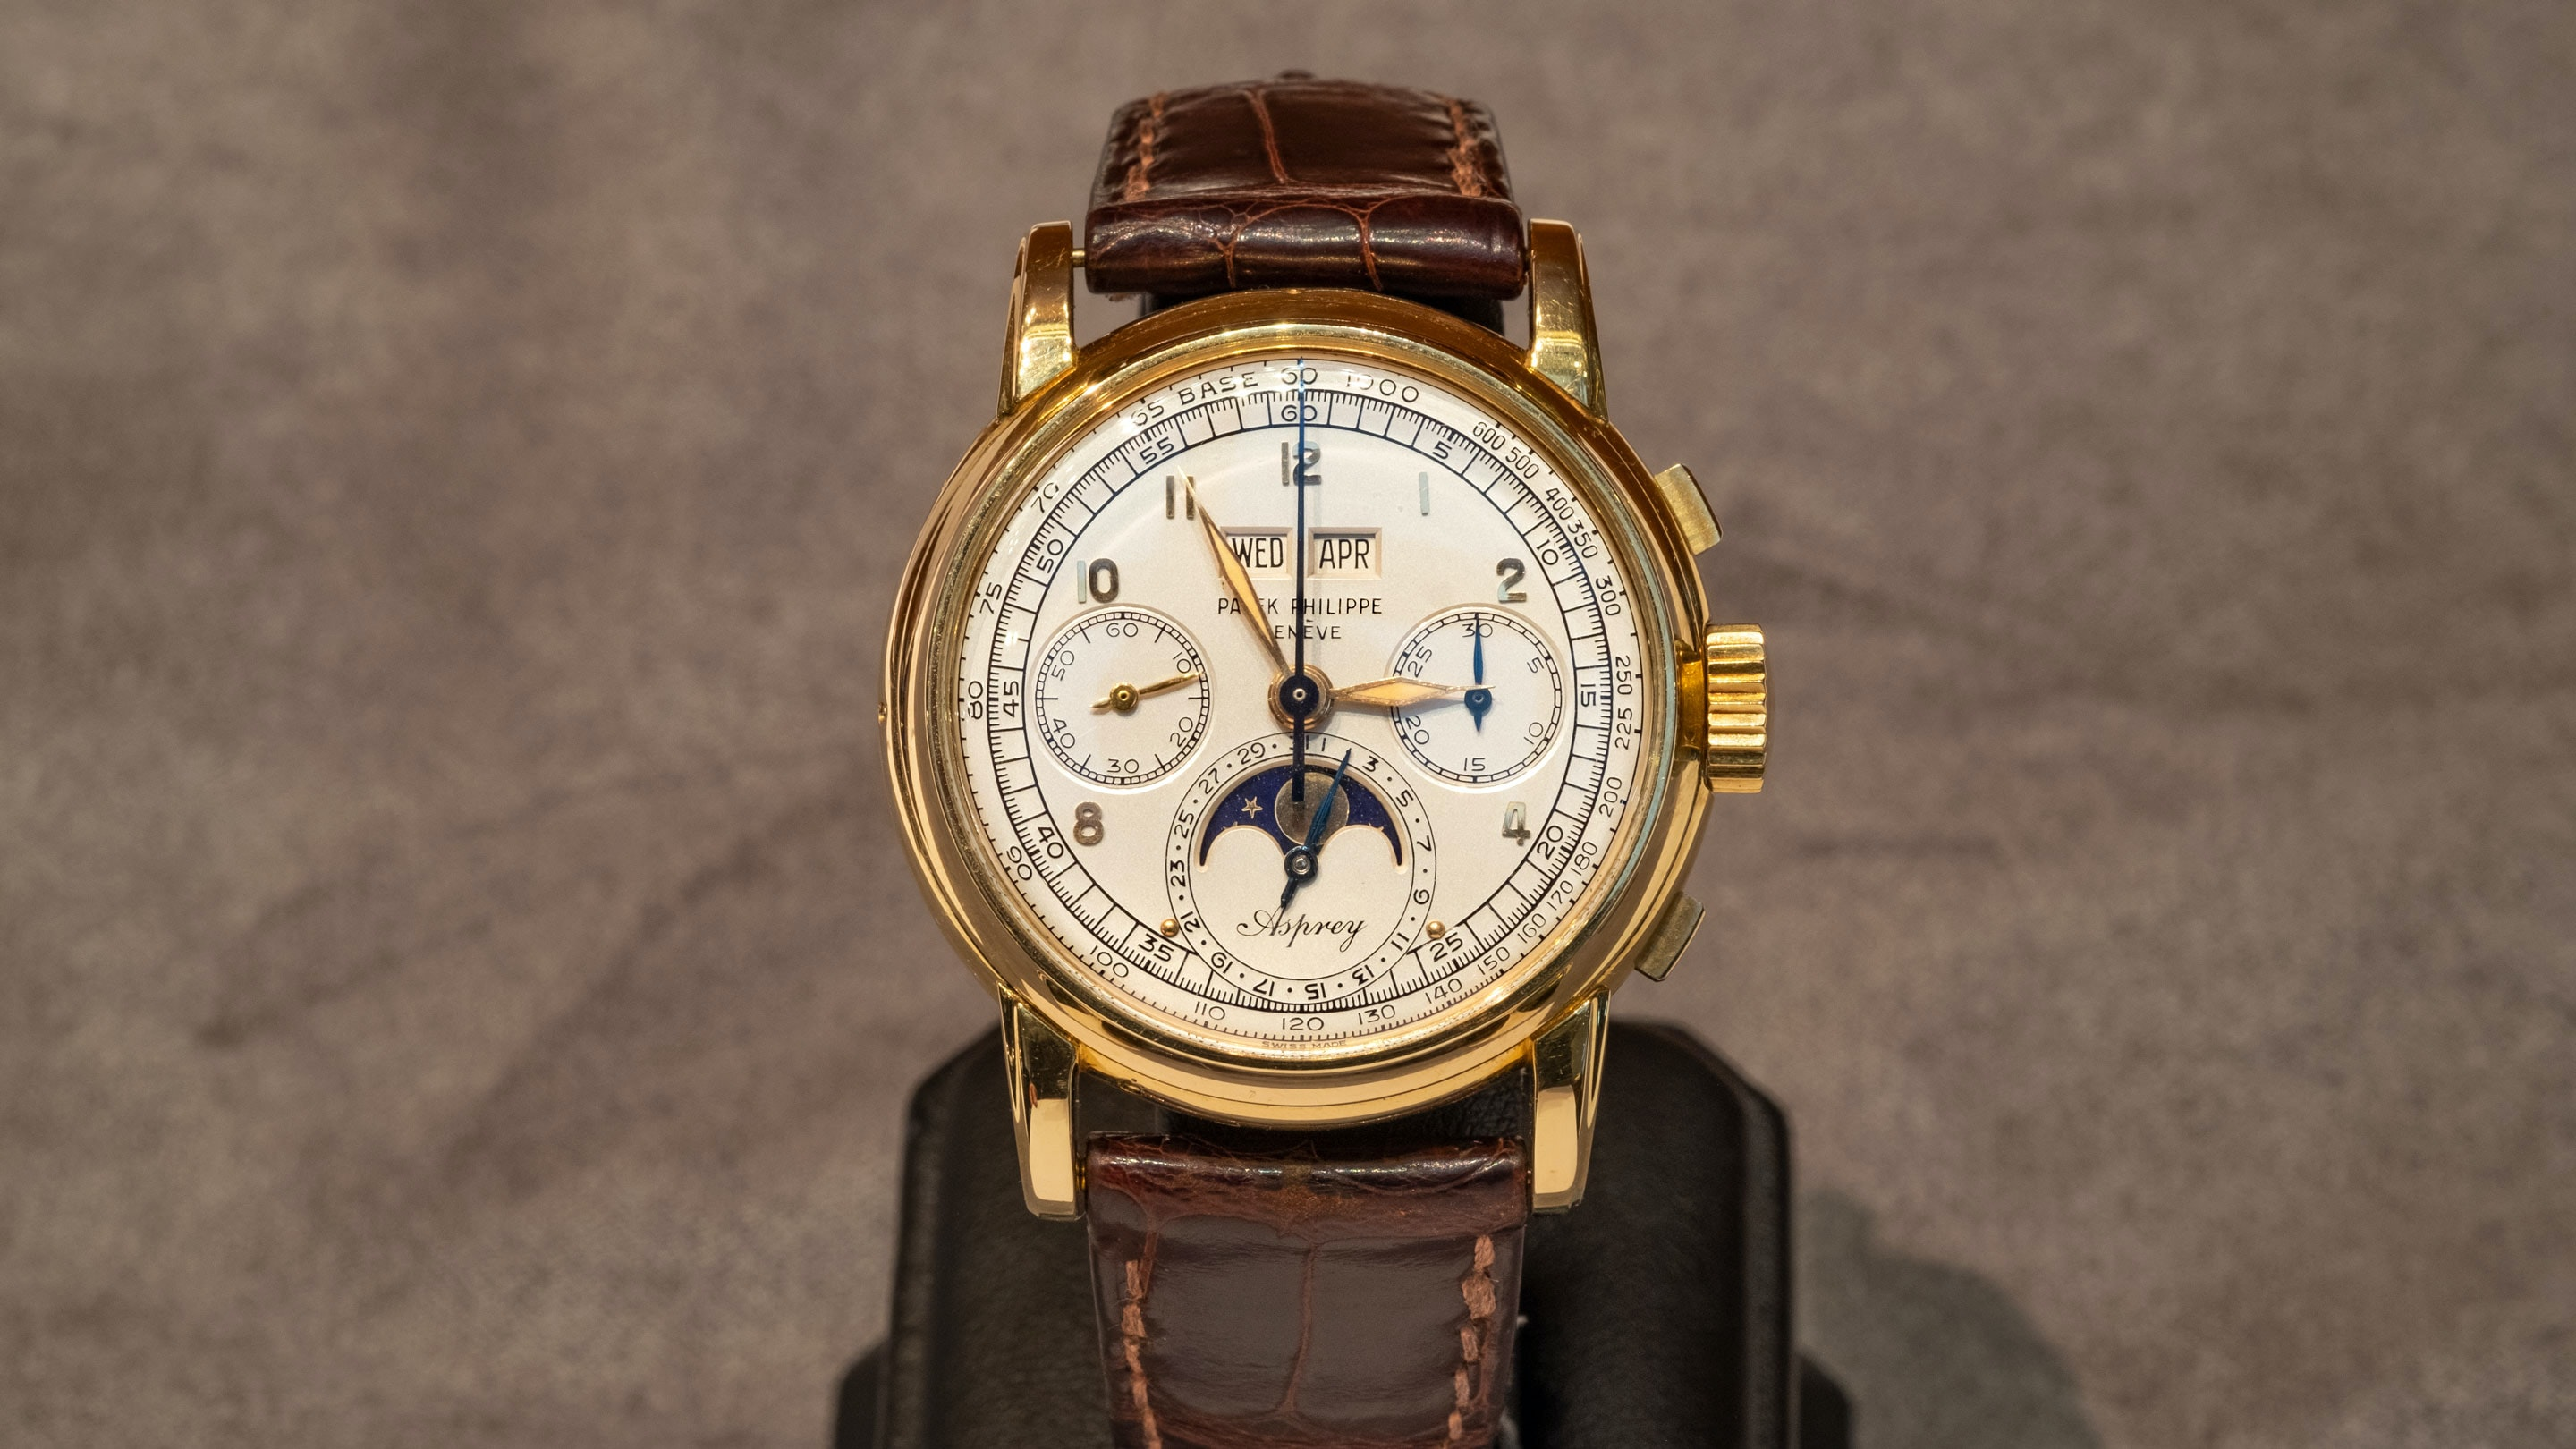 The Only Known Asprey-Signed Patek Philippe Ref. 2499 Sells For $3.88 Million At Sotheby's, Setting A New World Record